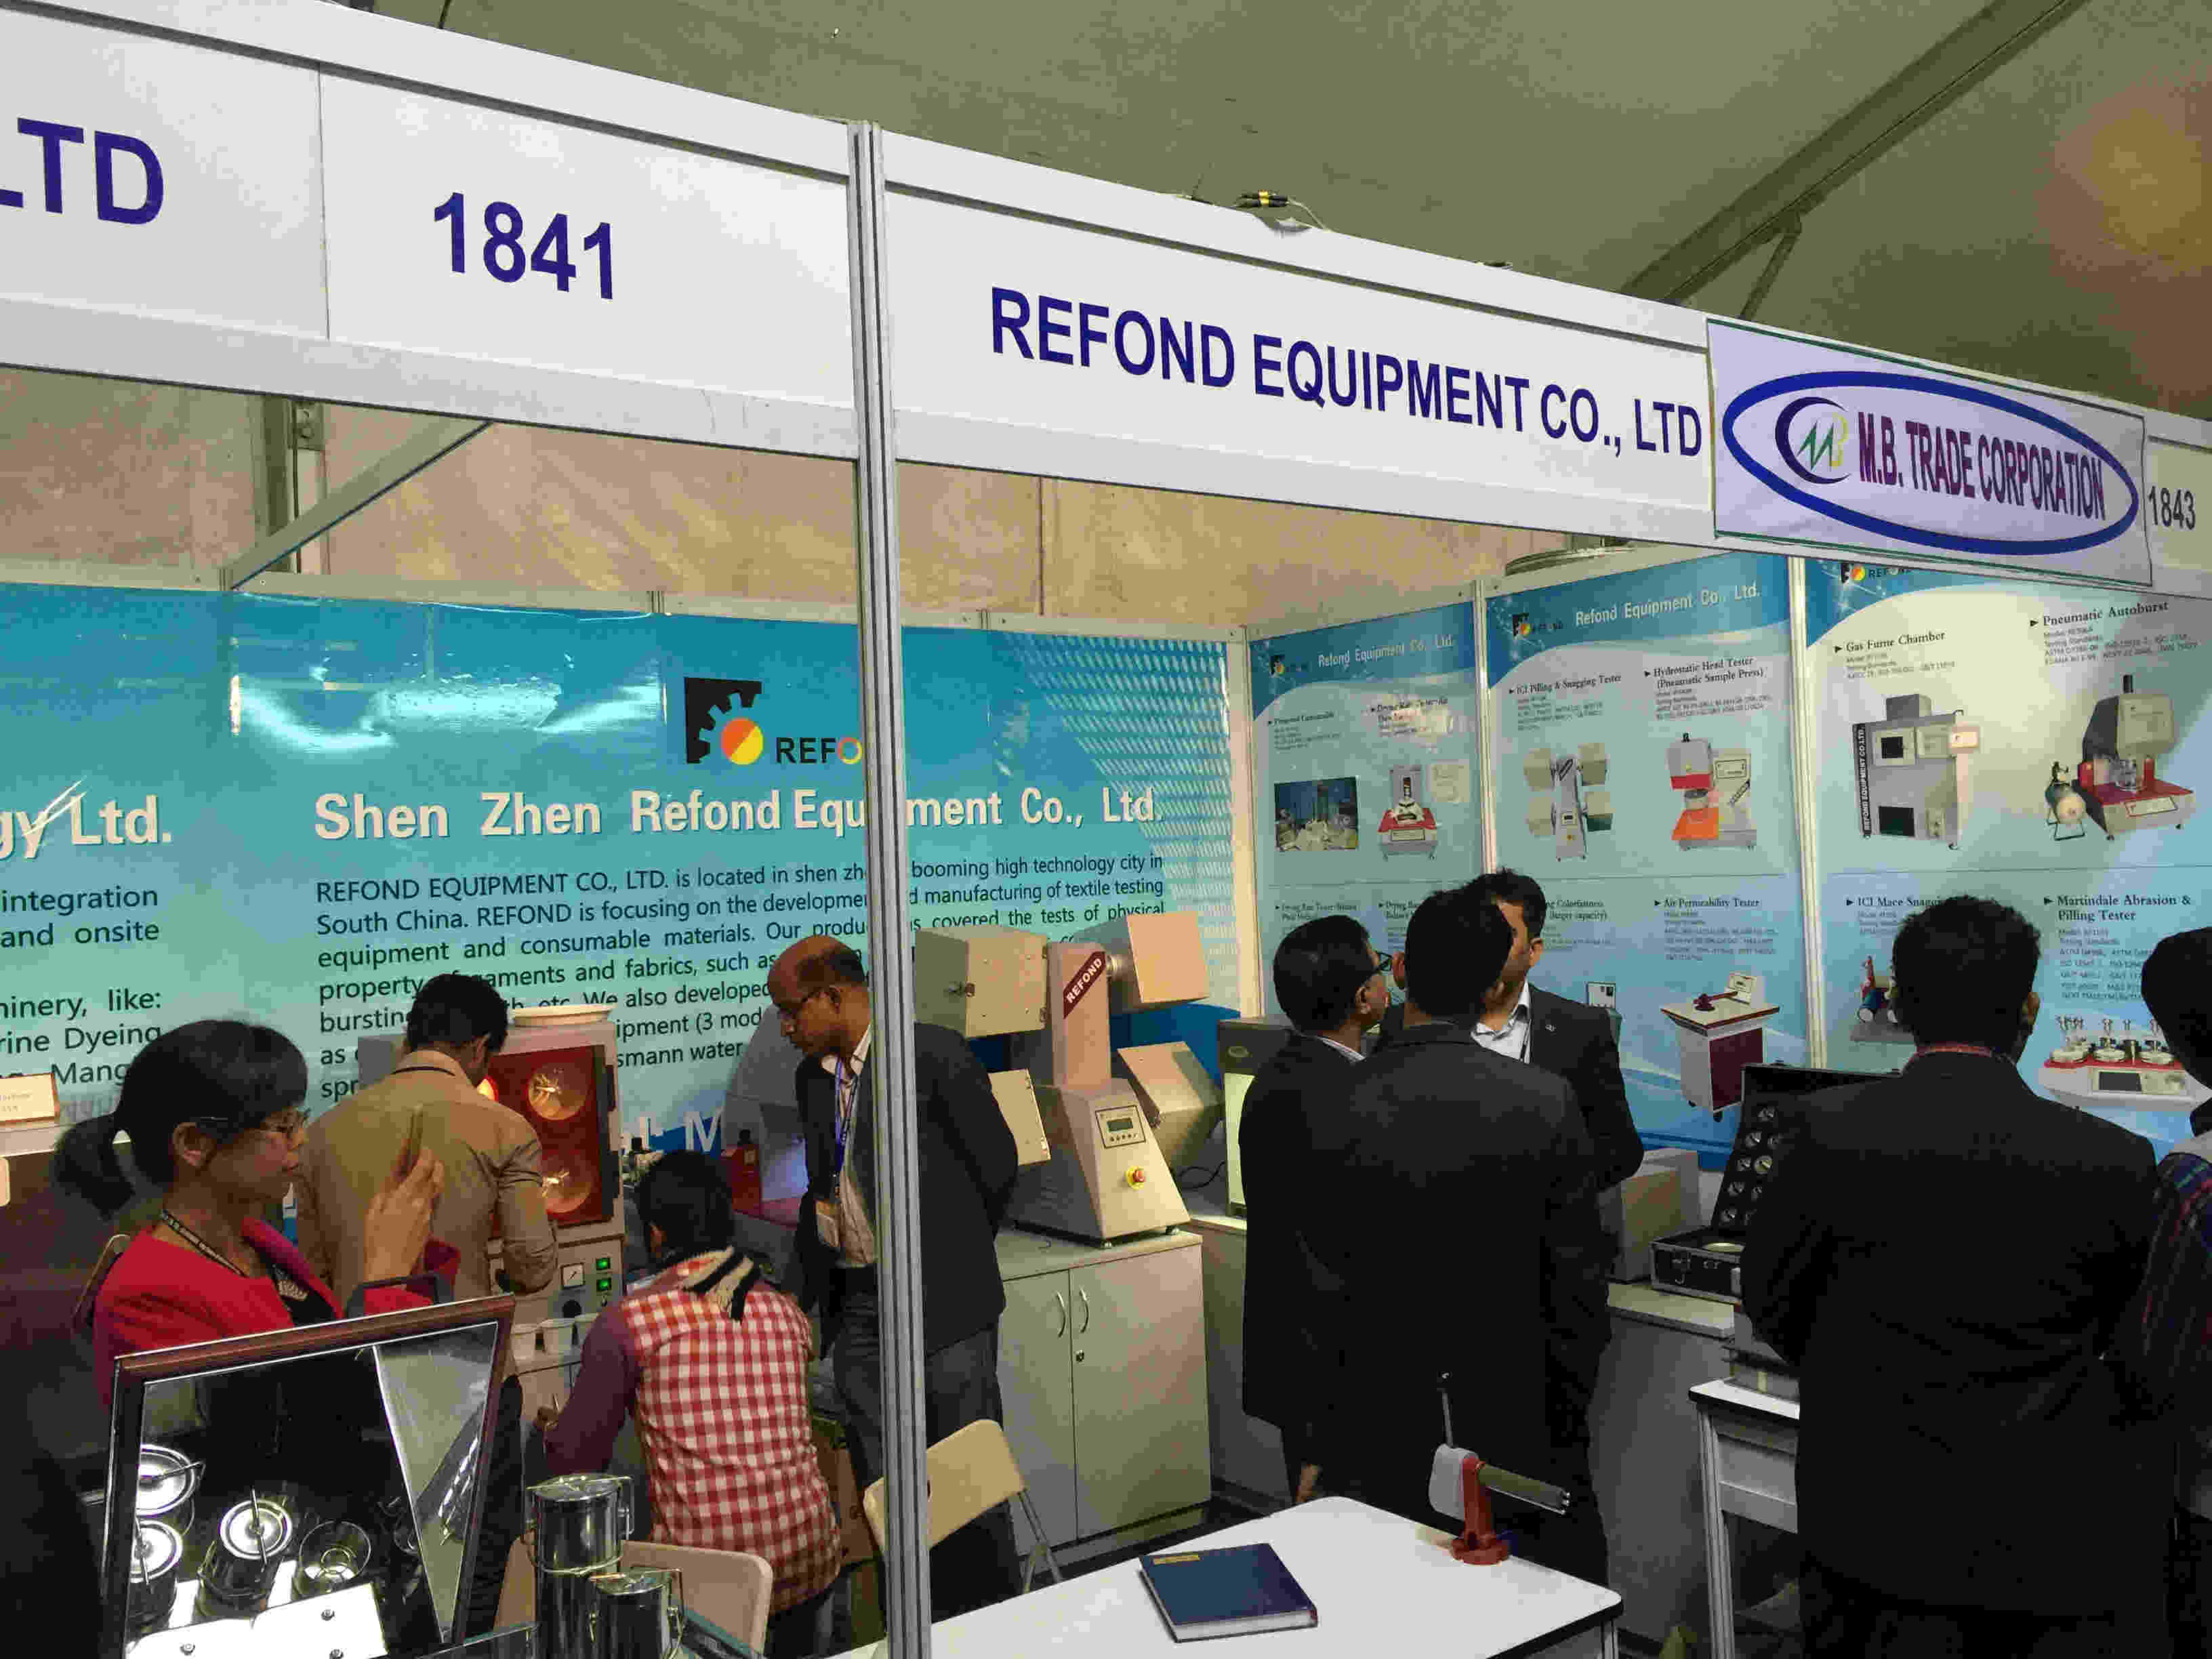 we have attended the Exhibition in Bangladesh